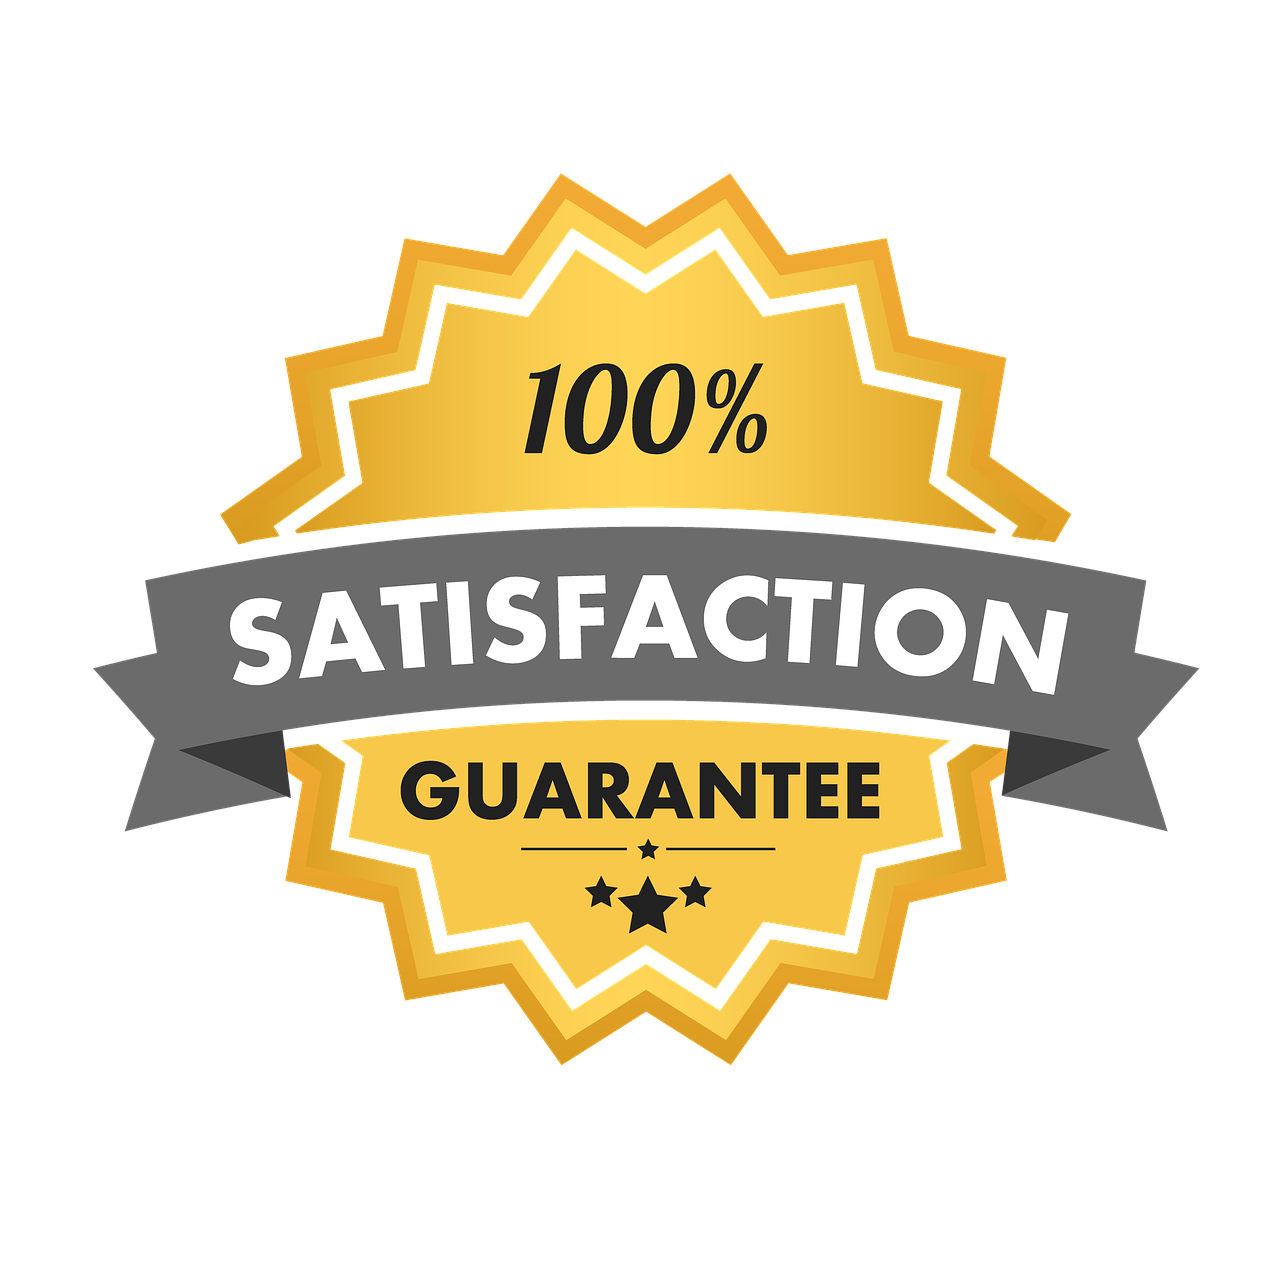 satisfaction-guarantee-54e1d54a48_1280